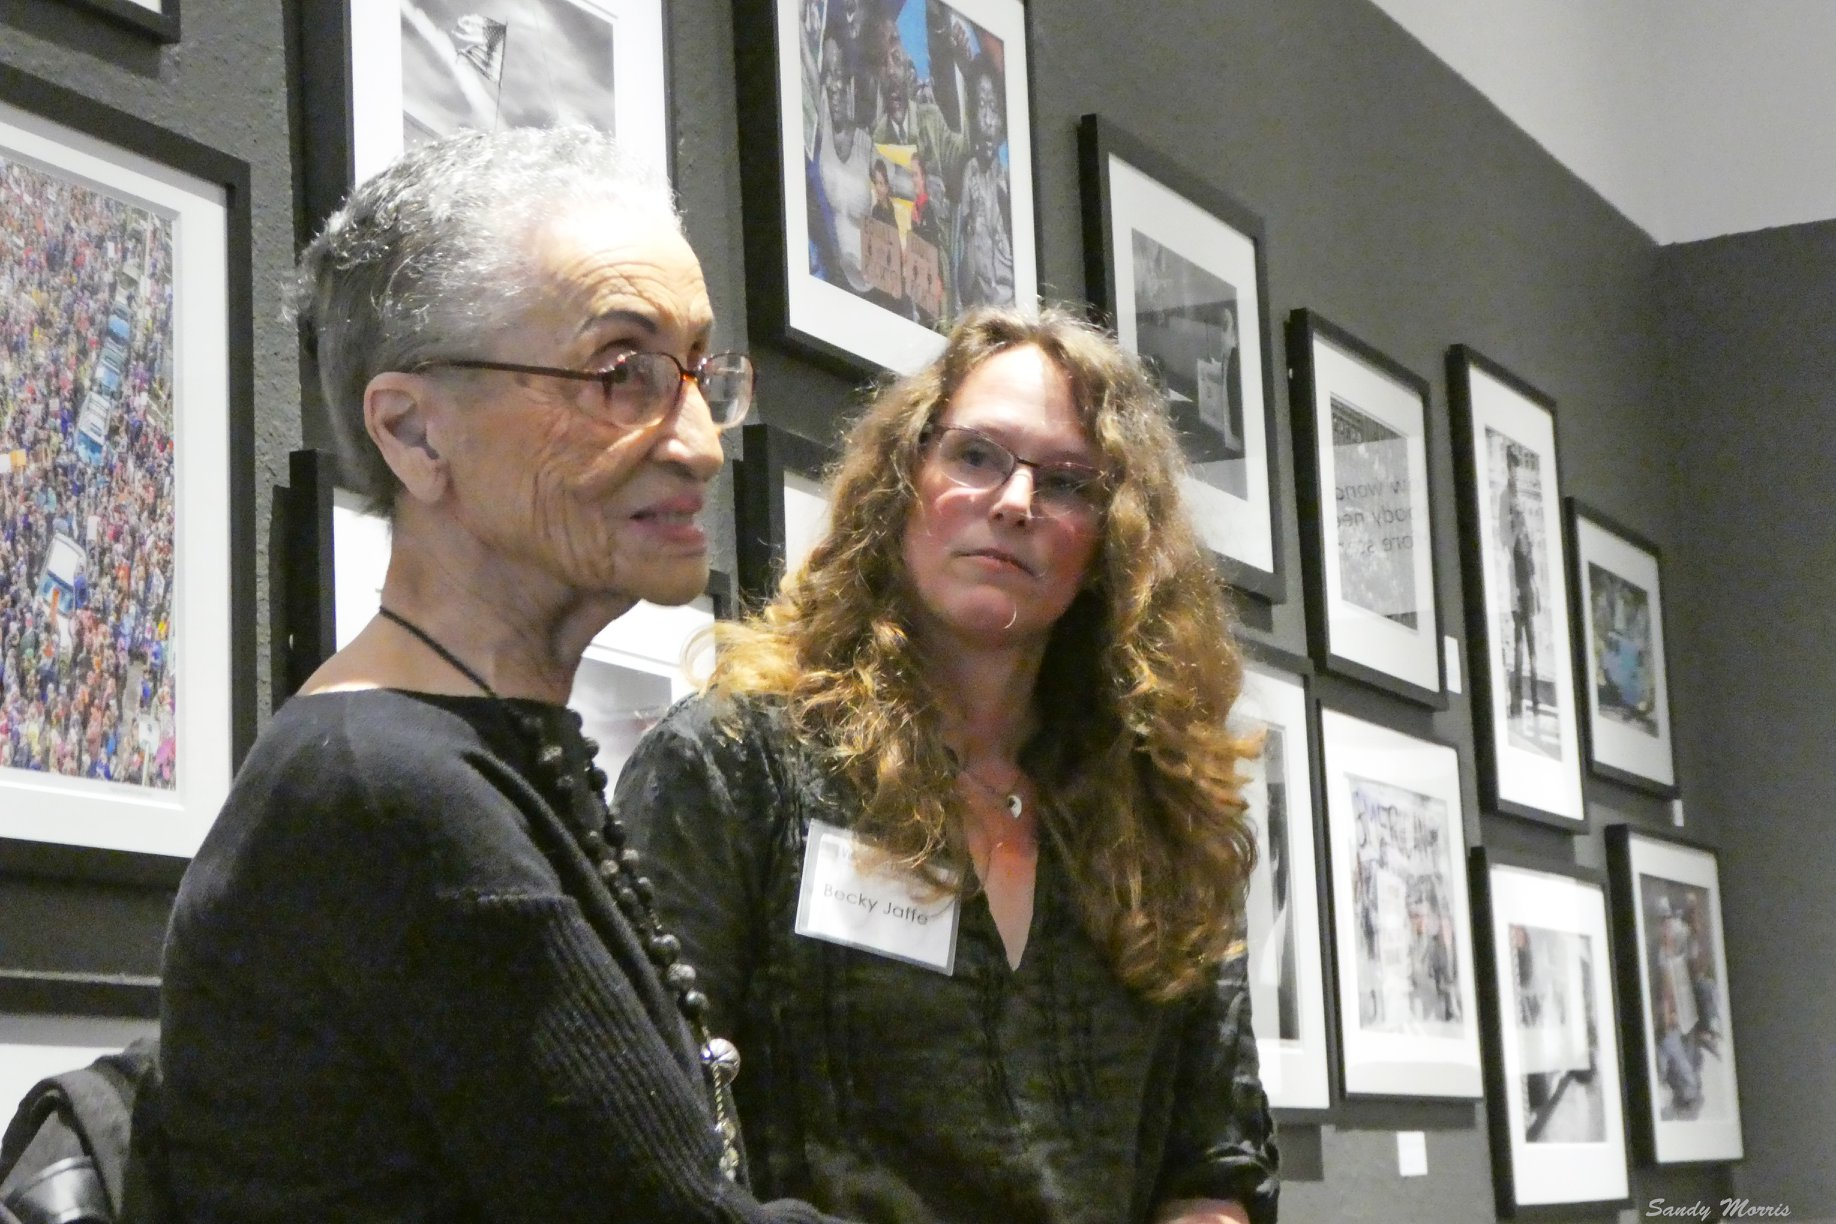 Becky Jaffe listening to civil rights activist Betty Reid Soskin, author of Sign My Name to Freedom, at the Visions of Democracy exhibit at the Abrams Claghorn Gallery. Photo by Sandy Morris